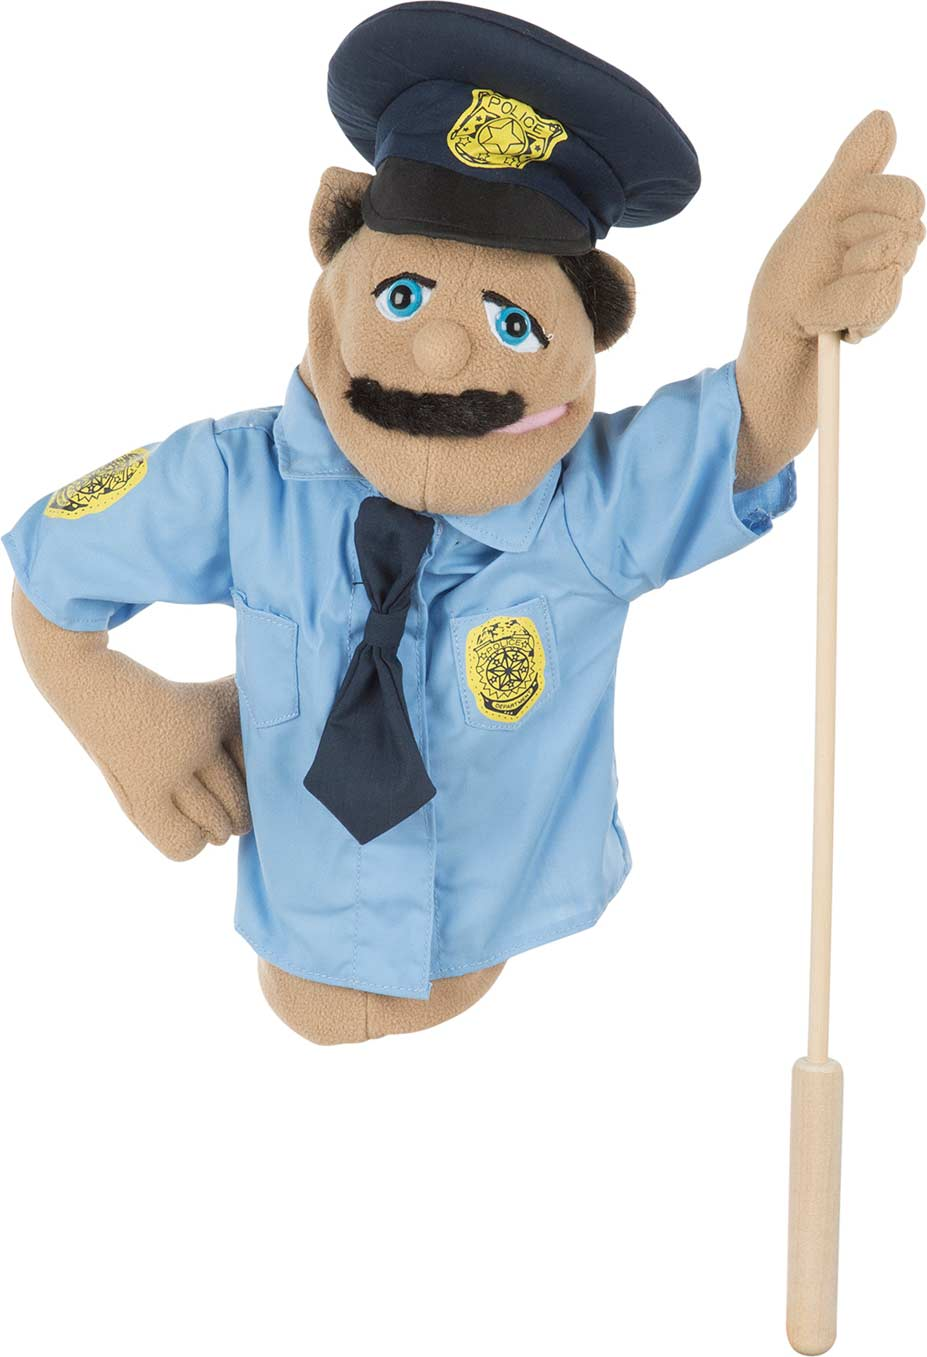 Police Officer Puppet Fun Stuff Toys